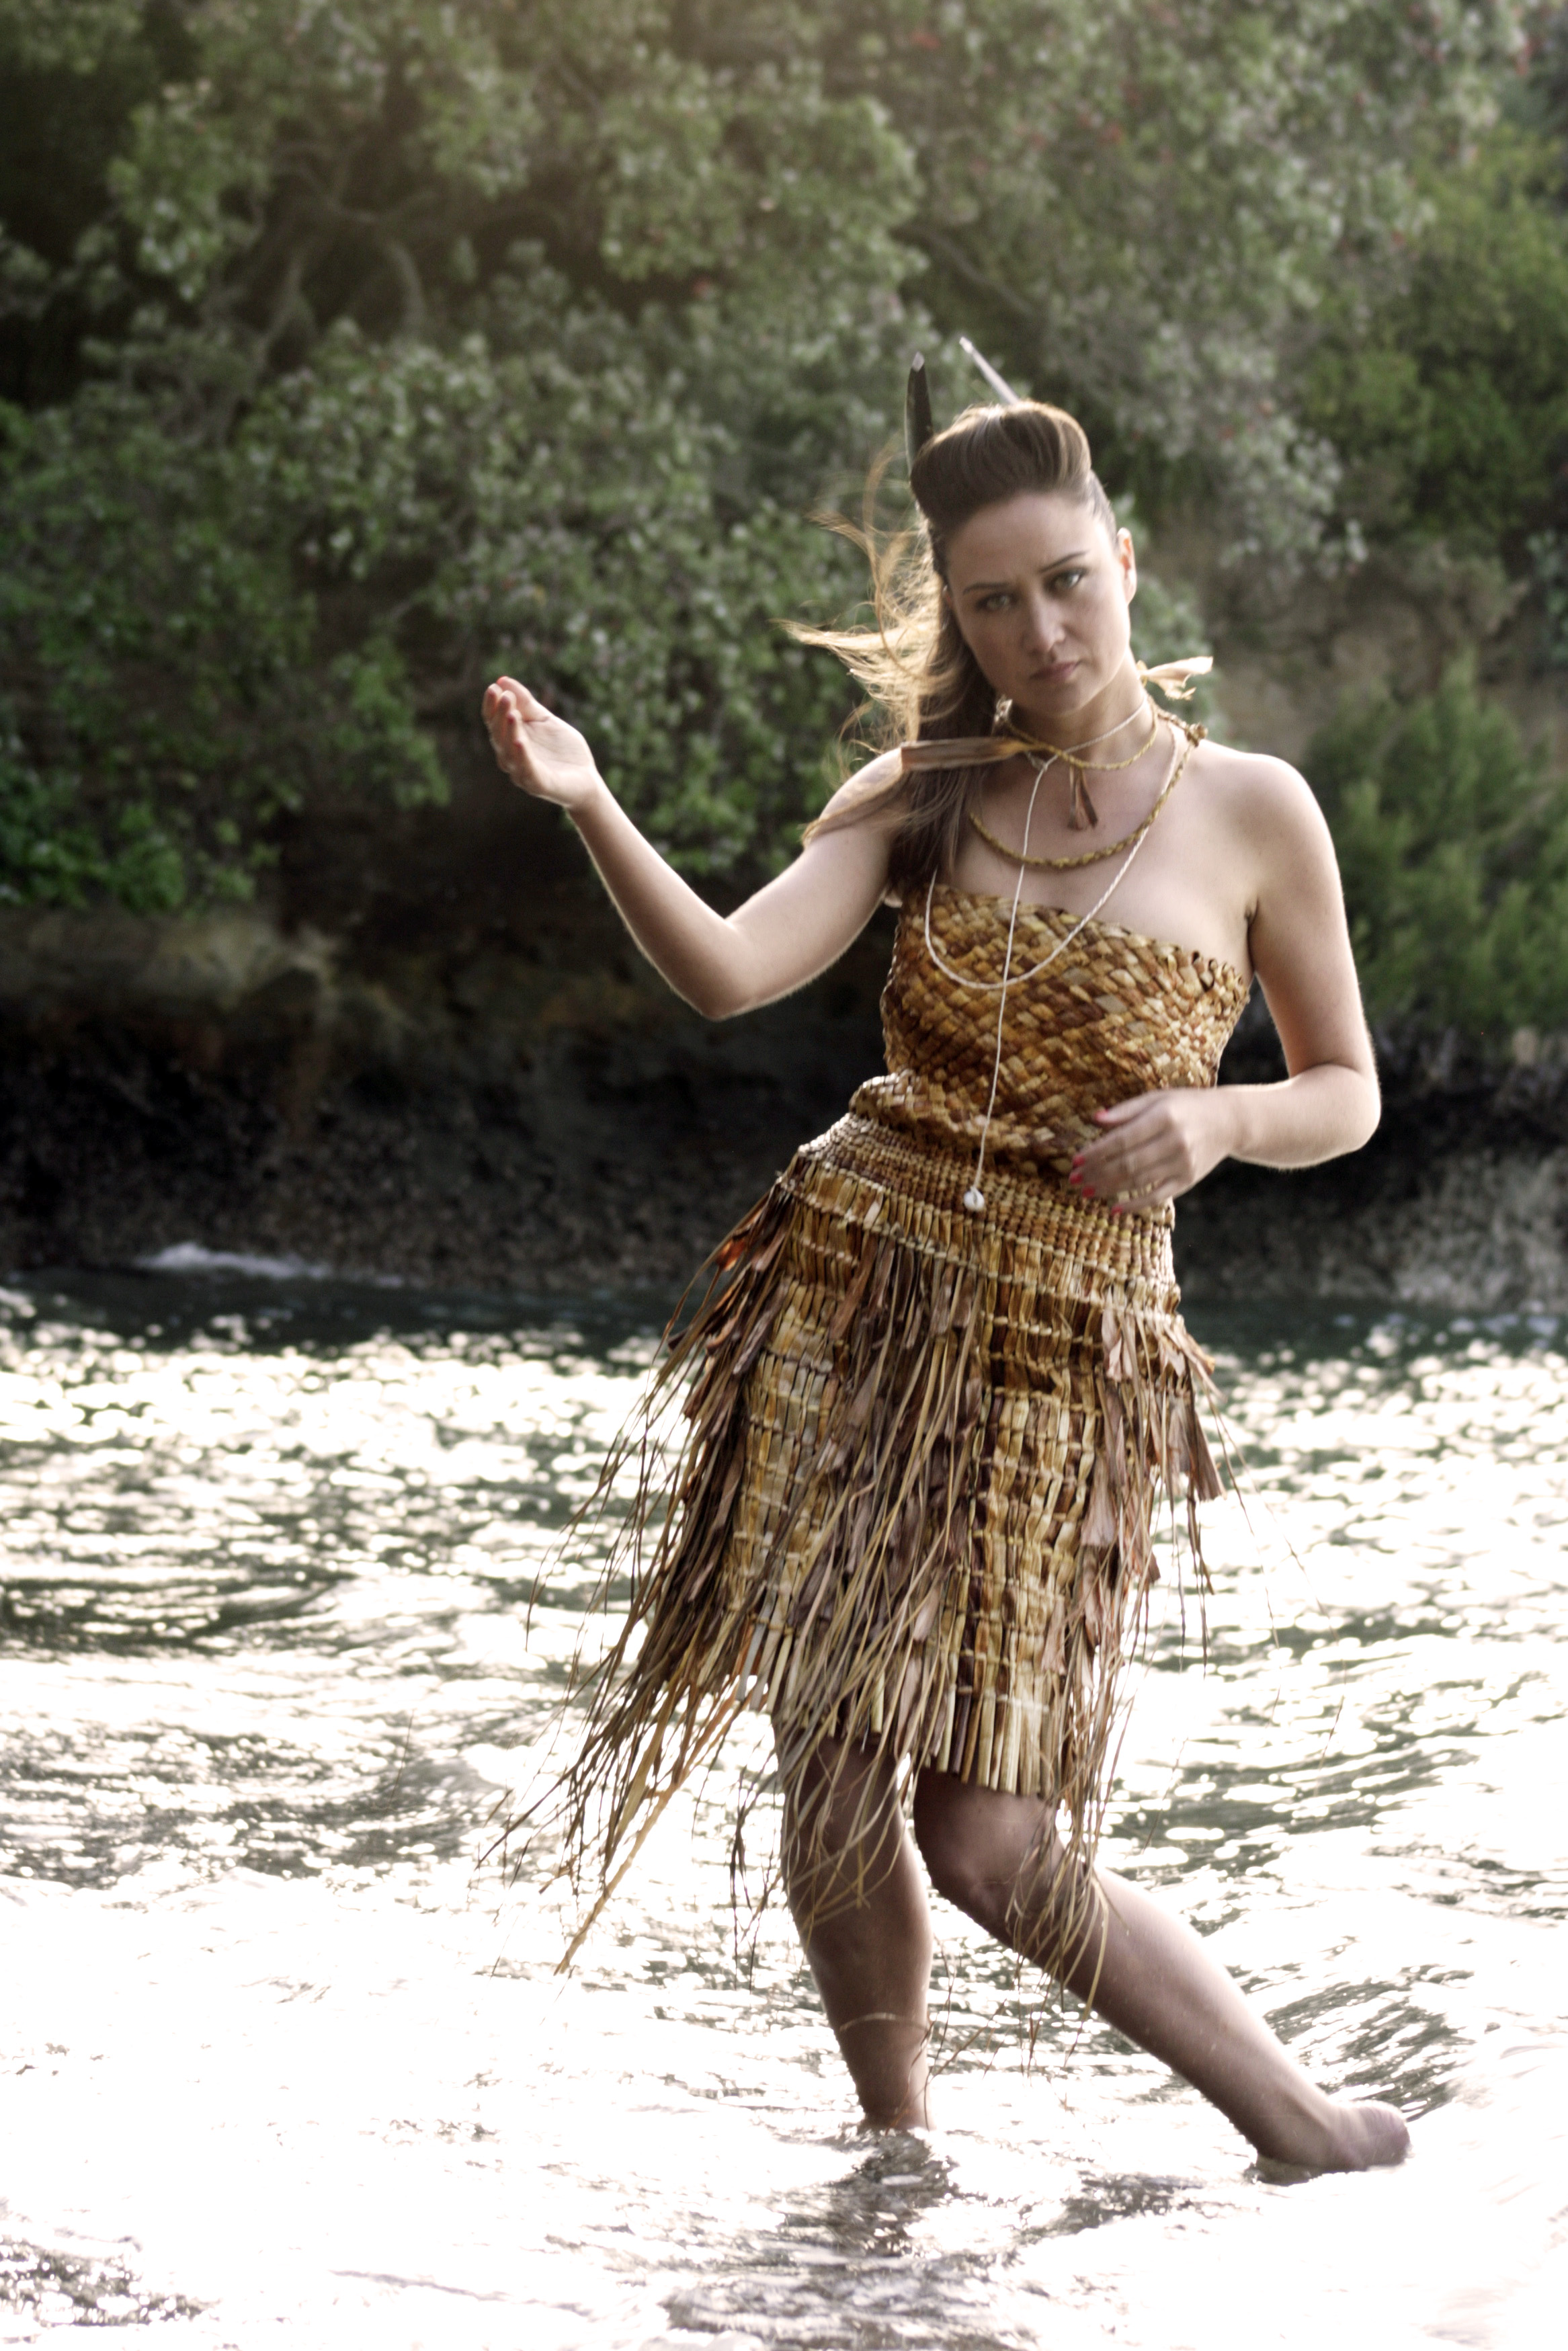 Weaving of Bethany Edmunds: 'Raninikura' Kuta and Pingao (sedge grass that grows in the sand dunes) This garment is a woven personification of Raninikura the daughter of our famous tupuna Tohe, and references the transient tribal connections of Te Hiku o te Ika (the Tail of the fish of Maui/ the far north). The materials are sourced from Muriwhenua (another name for the far north), and the golden colour palette of Kuta and Pingao suggests the glistening image of Raninikura that Tohe held in his memories.